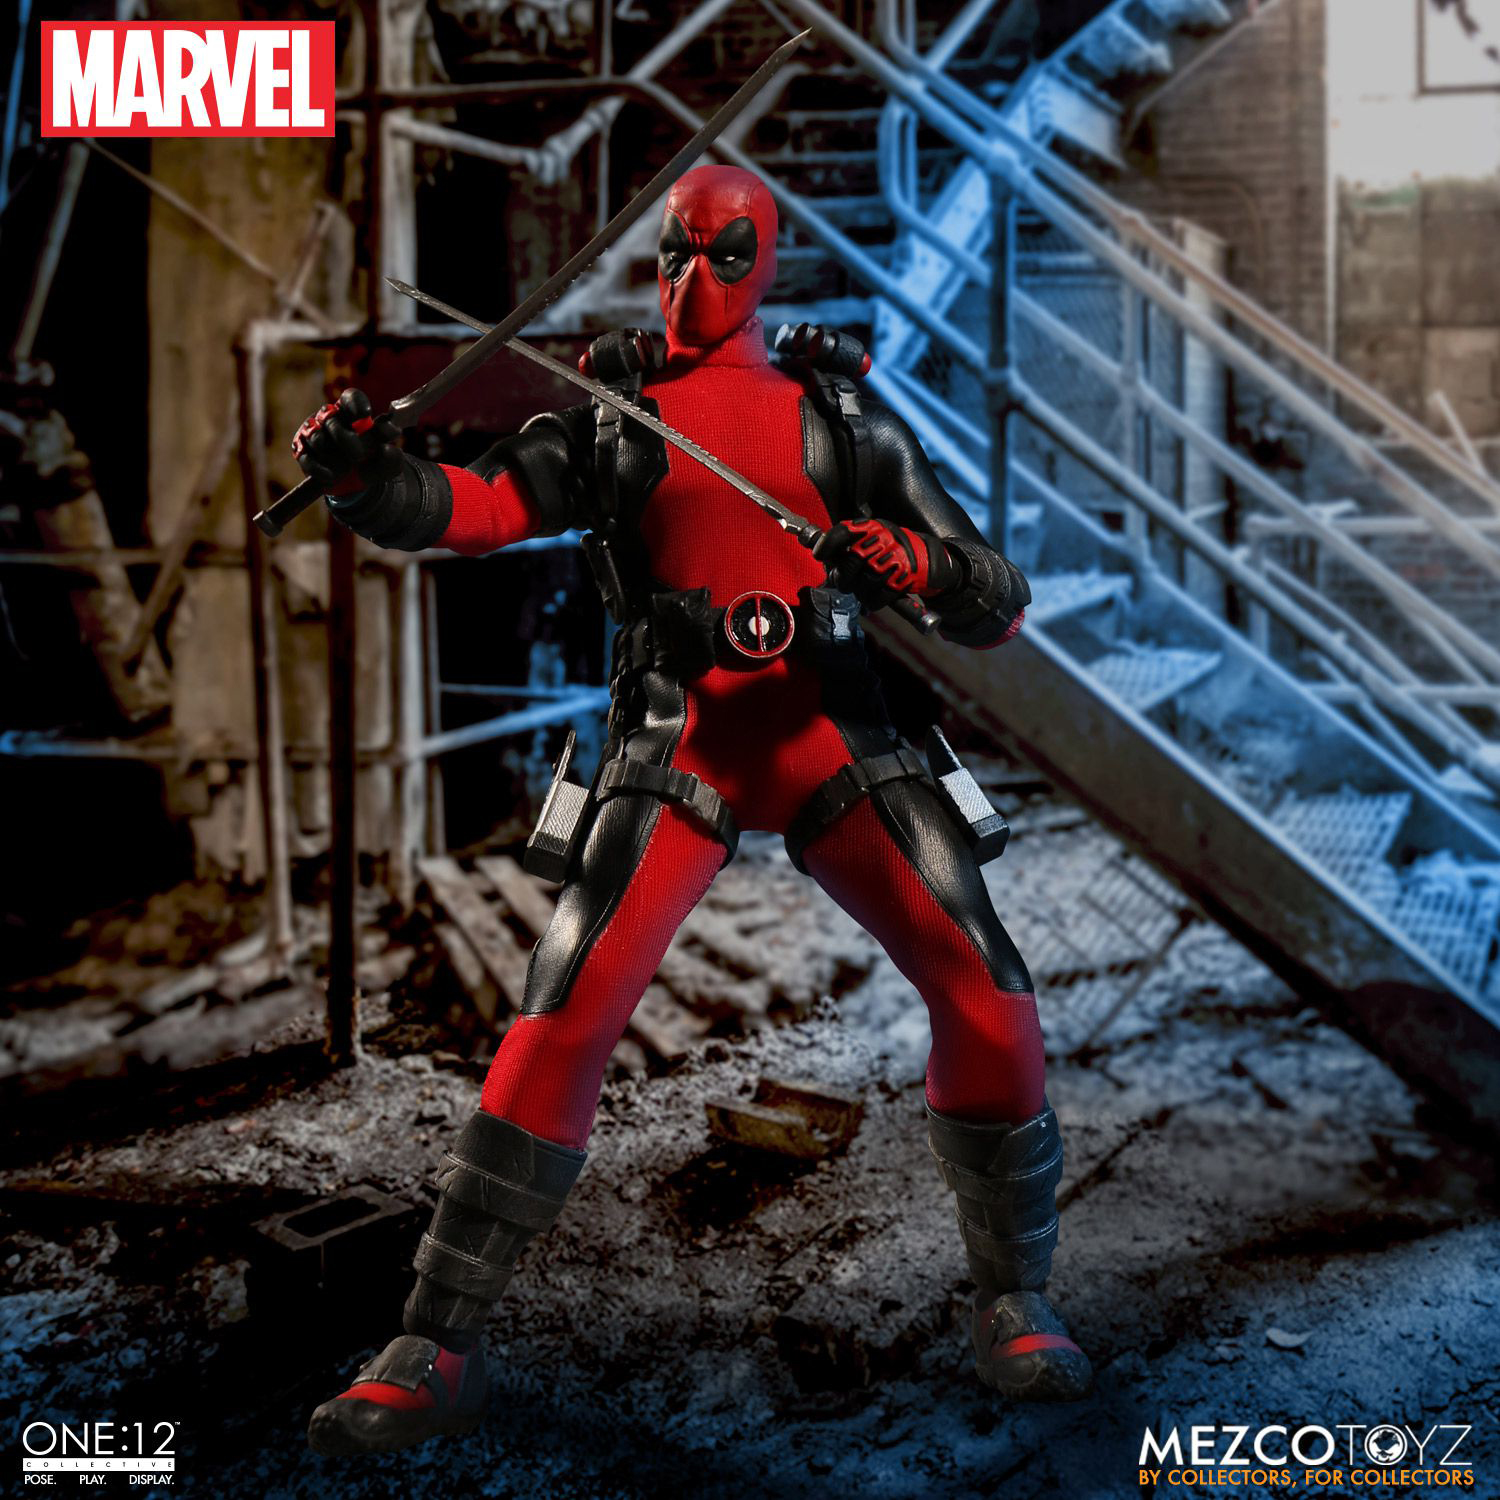 deadpool-mezco-one-12-collective-action-figure-3